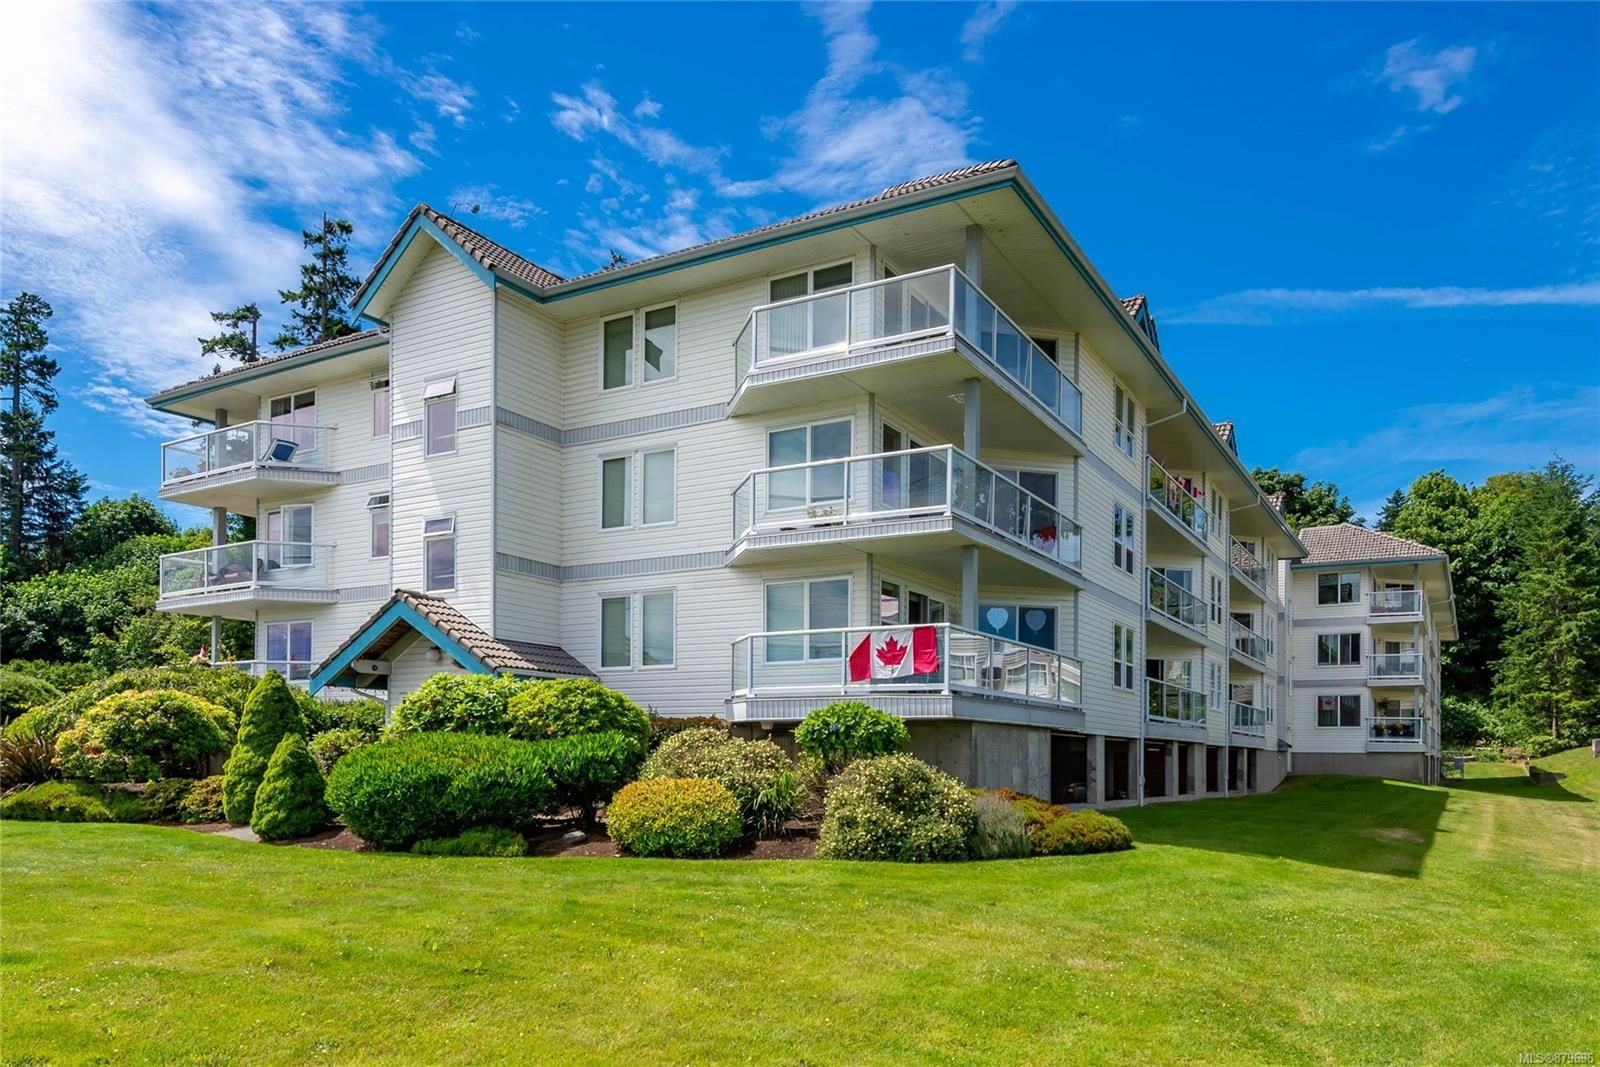 Photo 35: Photos: 219 390 S Island Hwy in : CR Campbell River West Condo for sale (Campbell River)  : MLS®# 879696